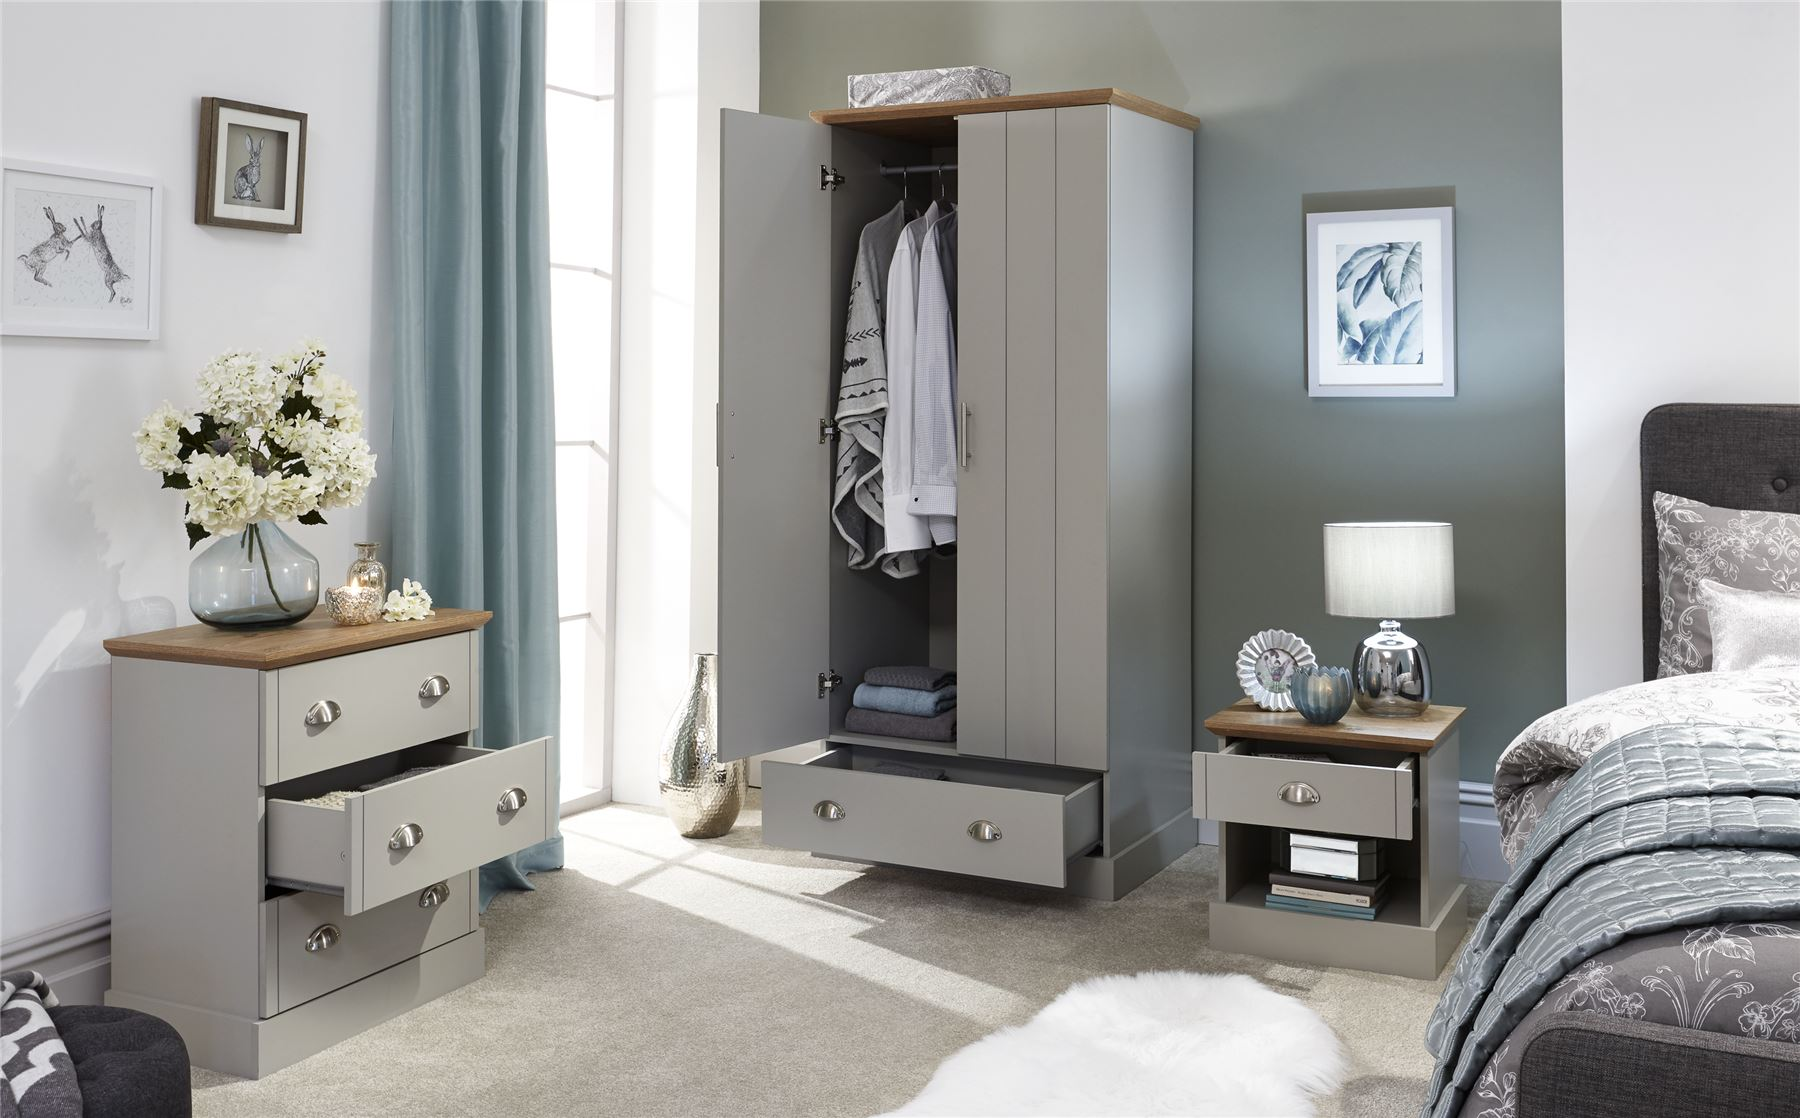 Details about KENDAL RANGE BEDROOM FURNITURE WARDROBE DRESSING TABLE  CABINET BEDSIDE TABLE